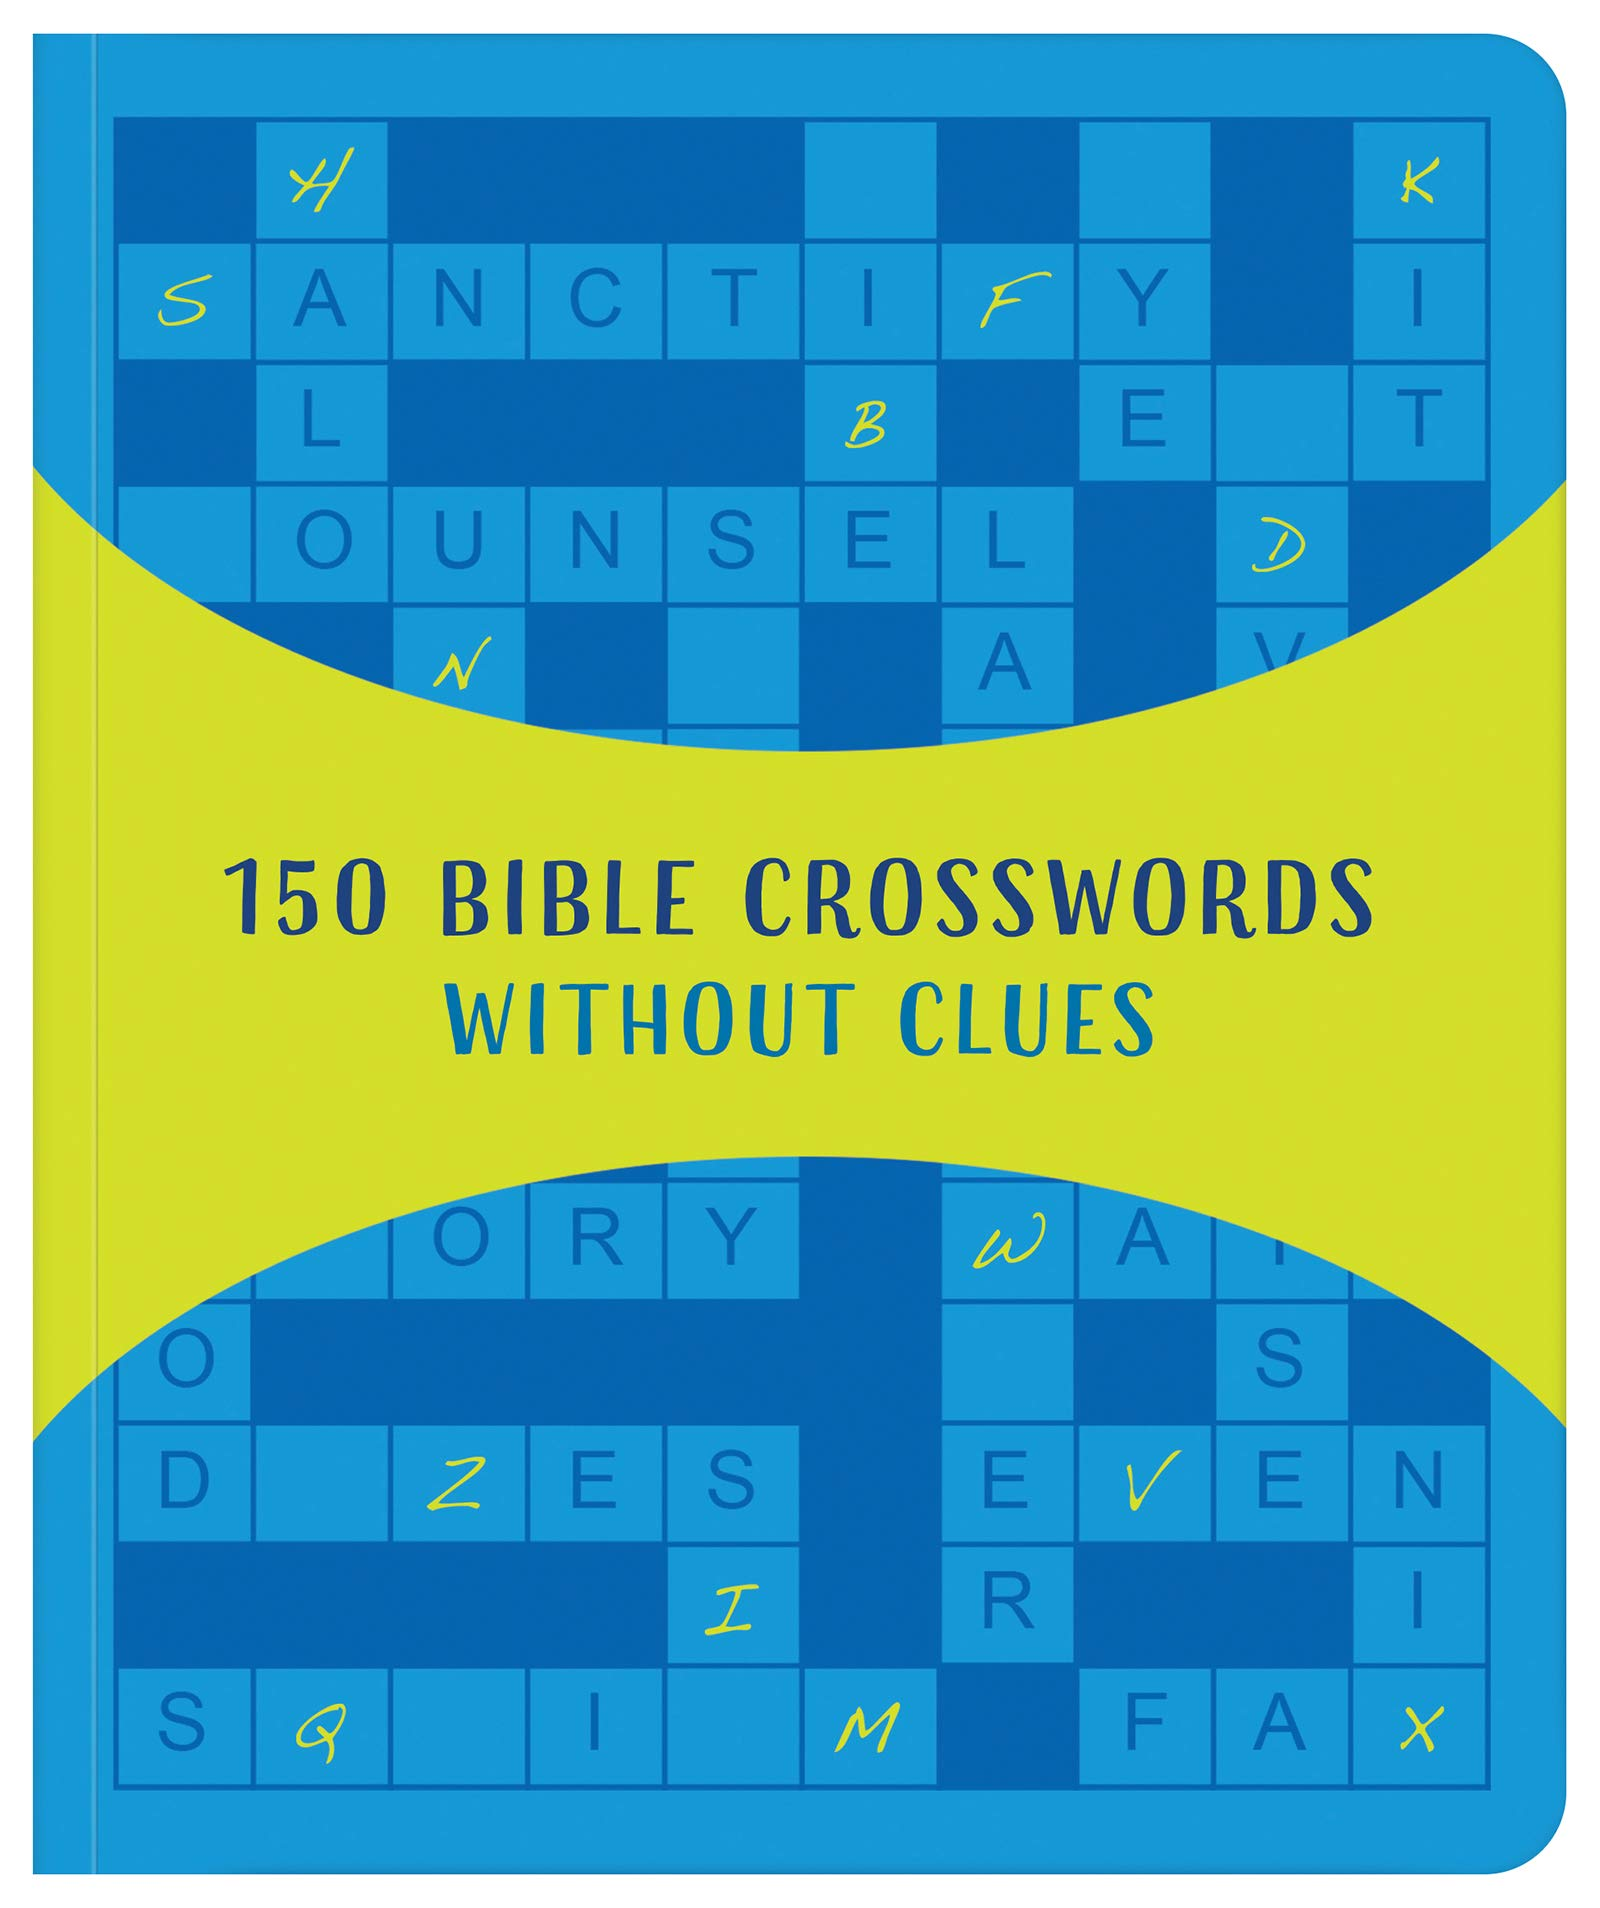 150 Bible Crosswords Without Clues A New Twist On A Classic Favorite Compiled By Barbour Staff 9781643522524 Amazon Com Books